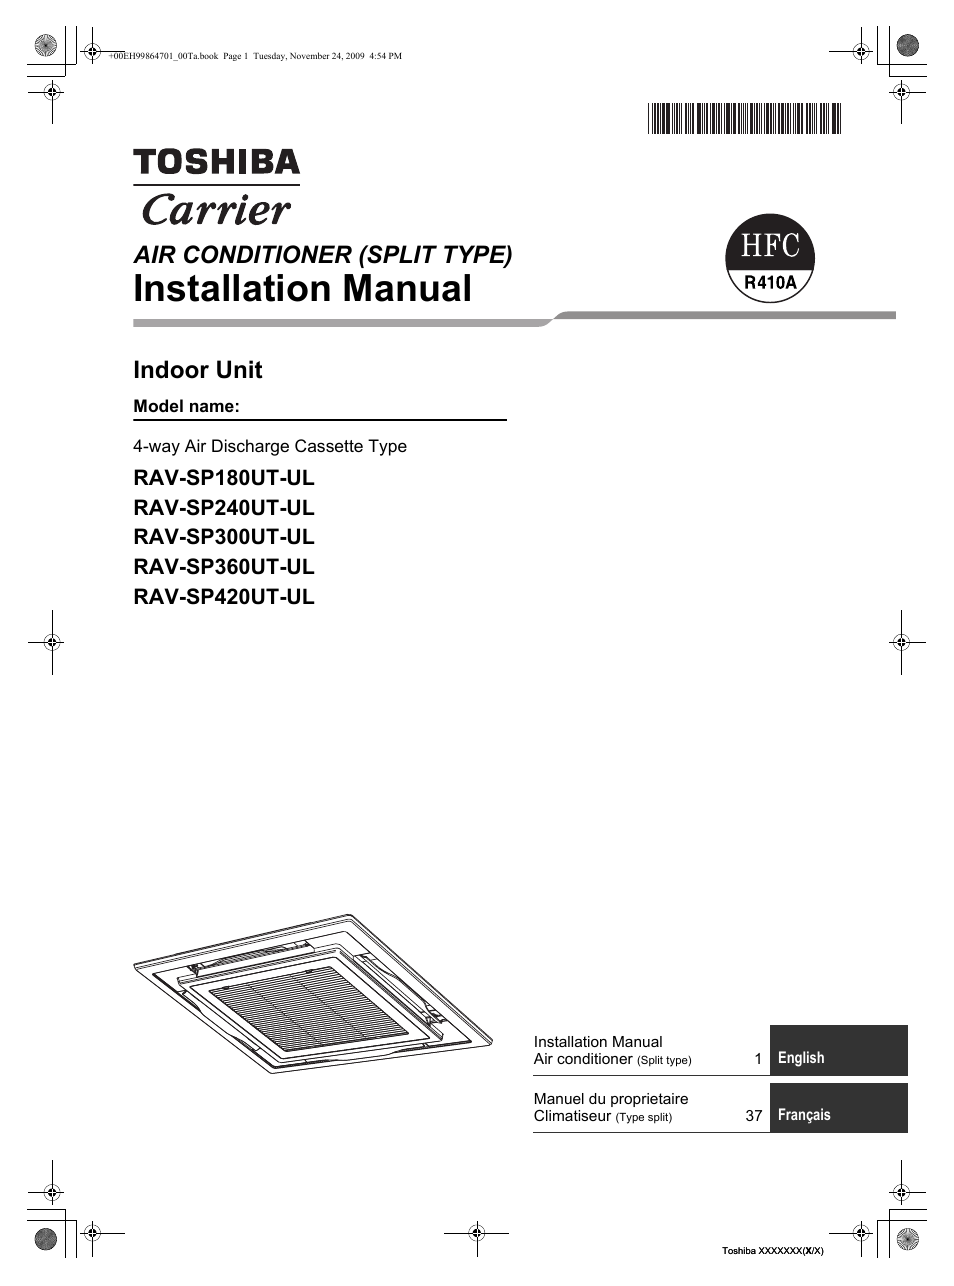 Toshiba Carrier Rav Sp180ut Ul En User Manual 38 Pages